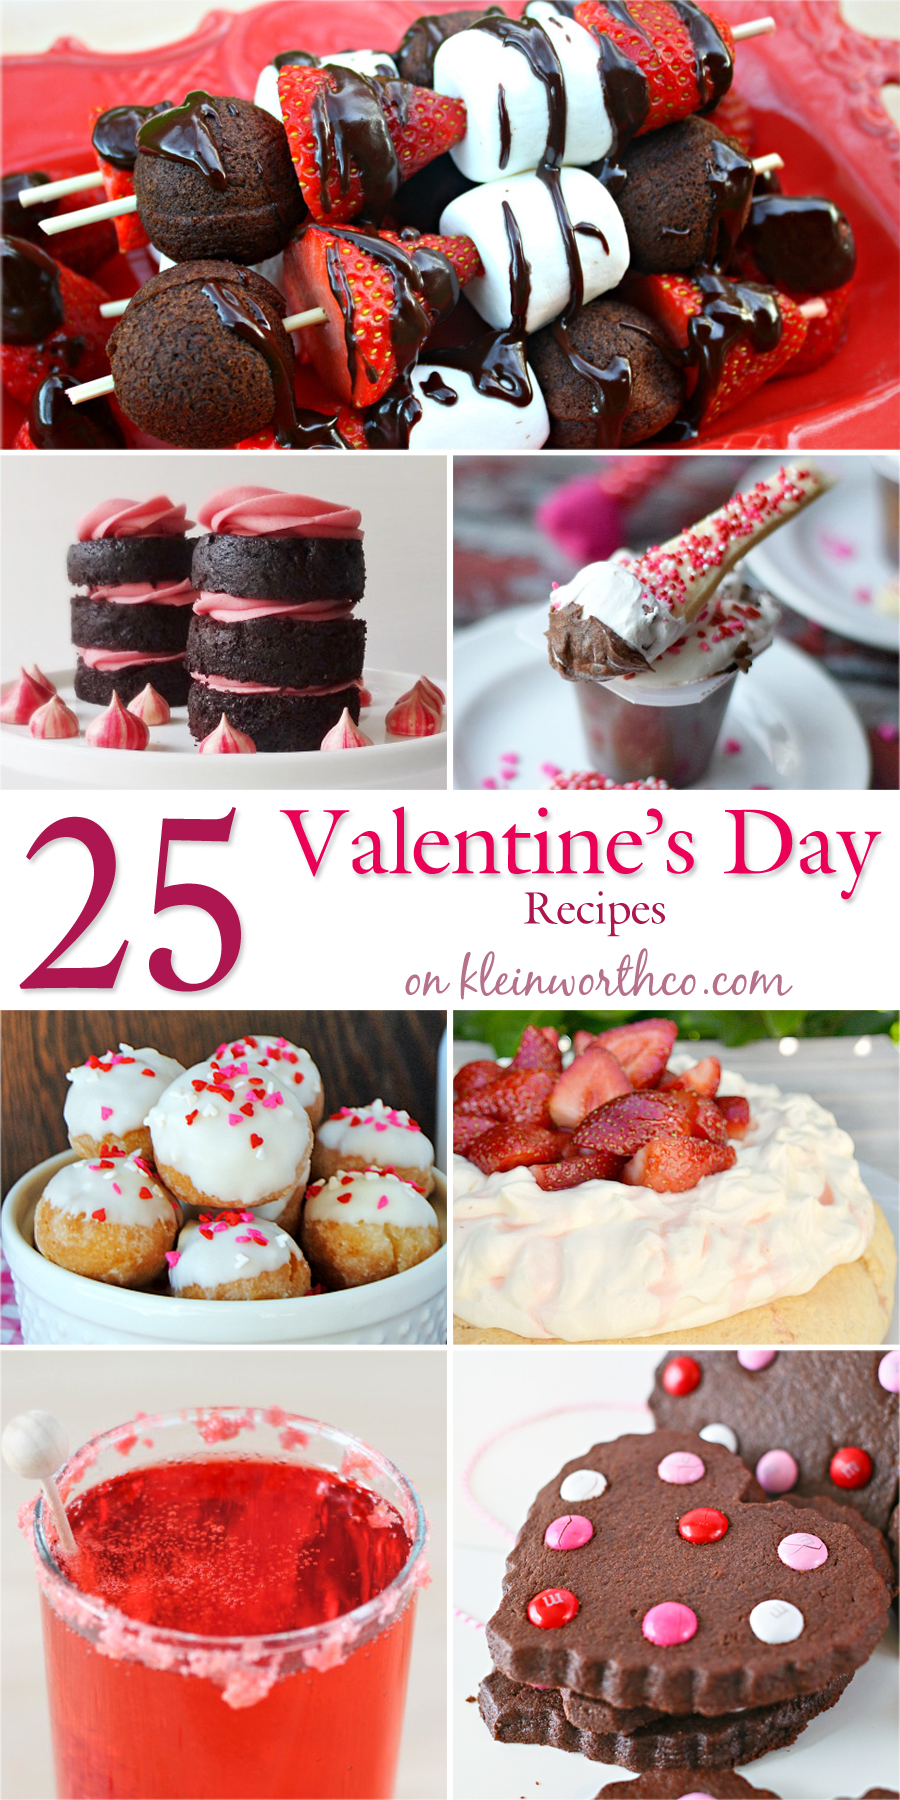 25 Valentine's Day Recipes